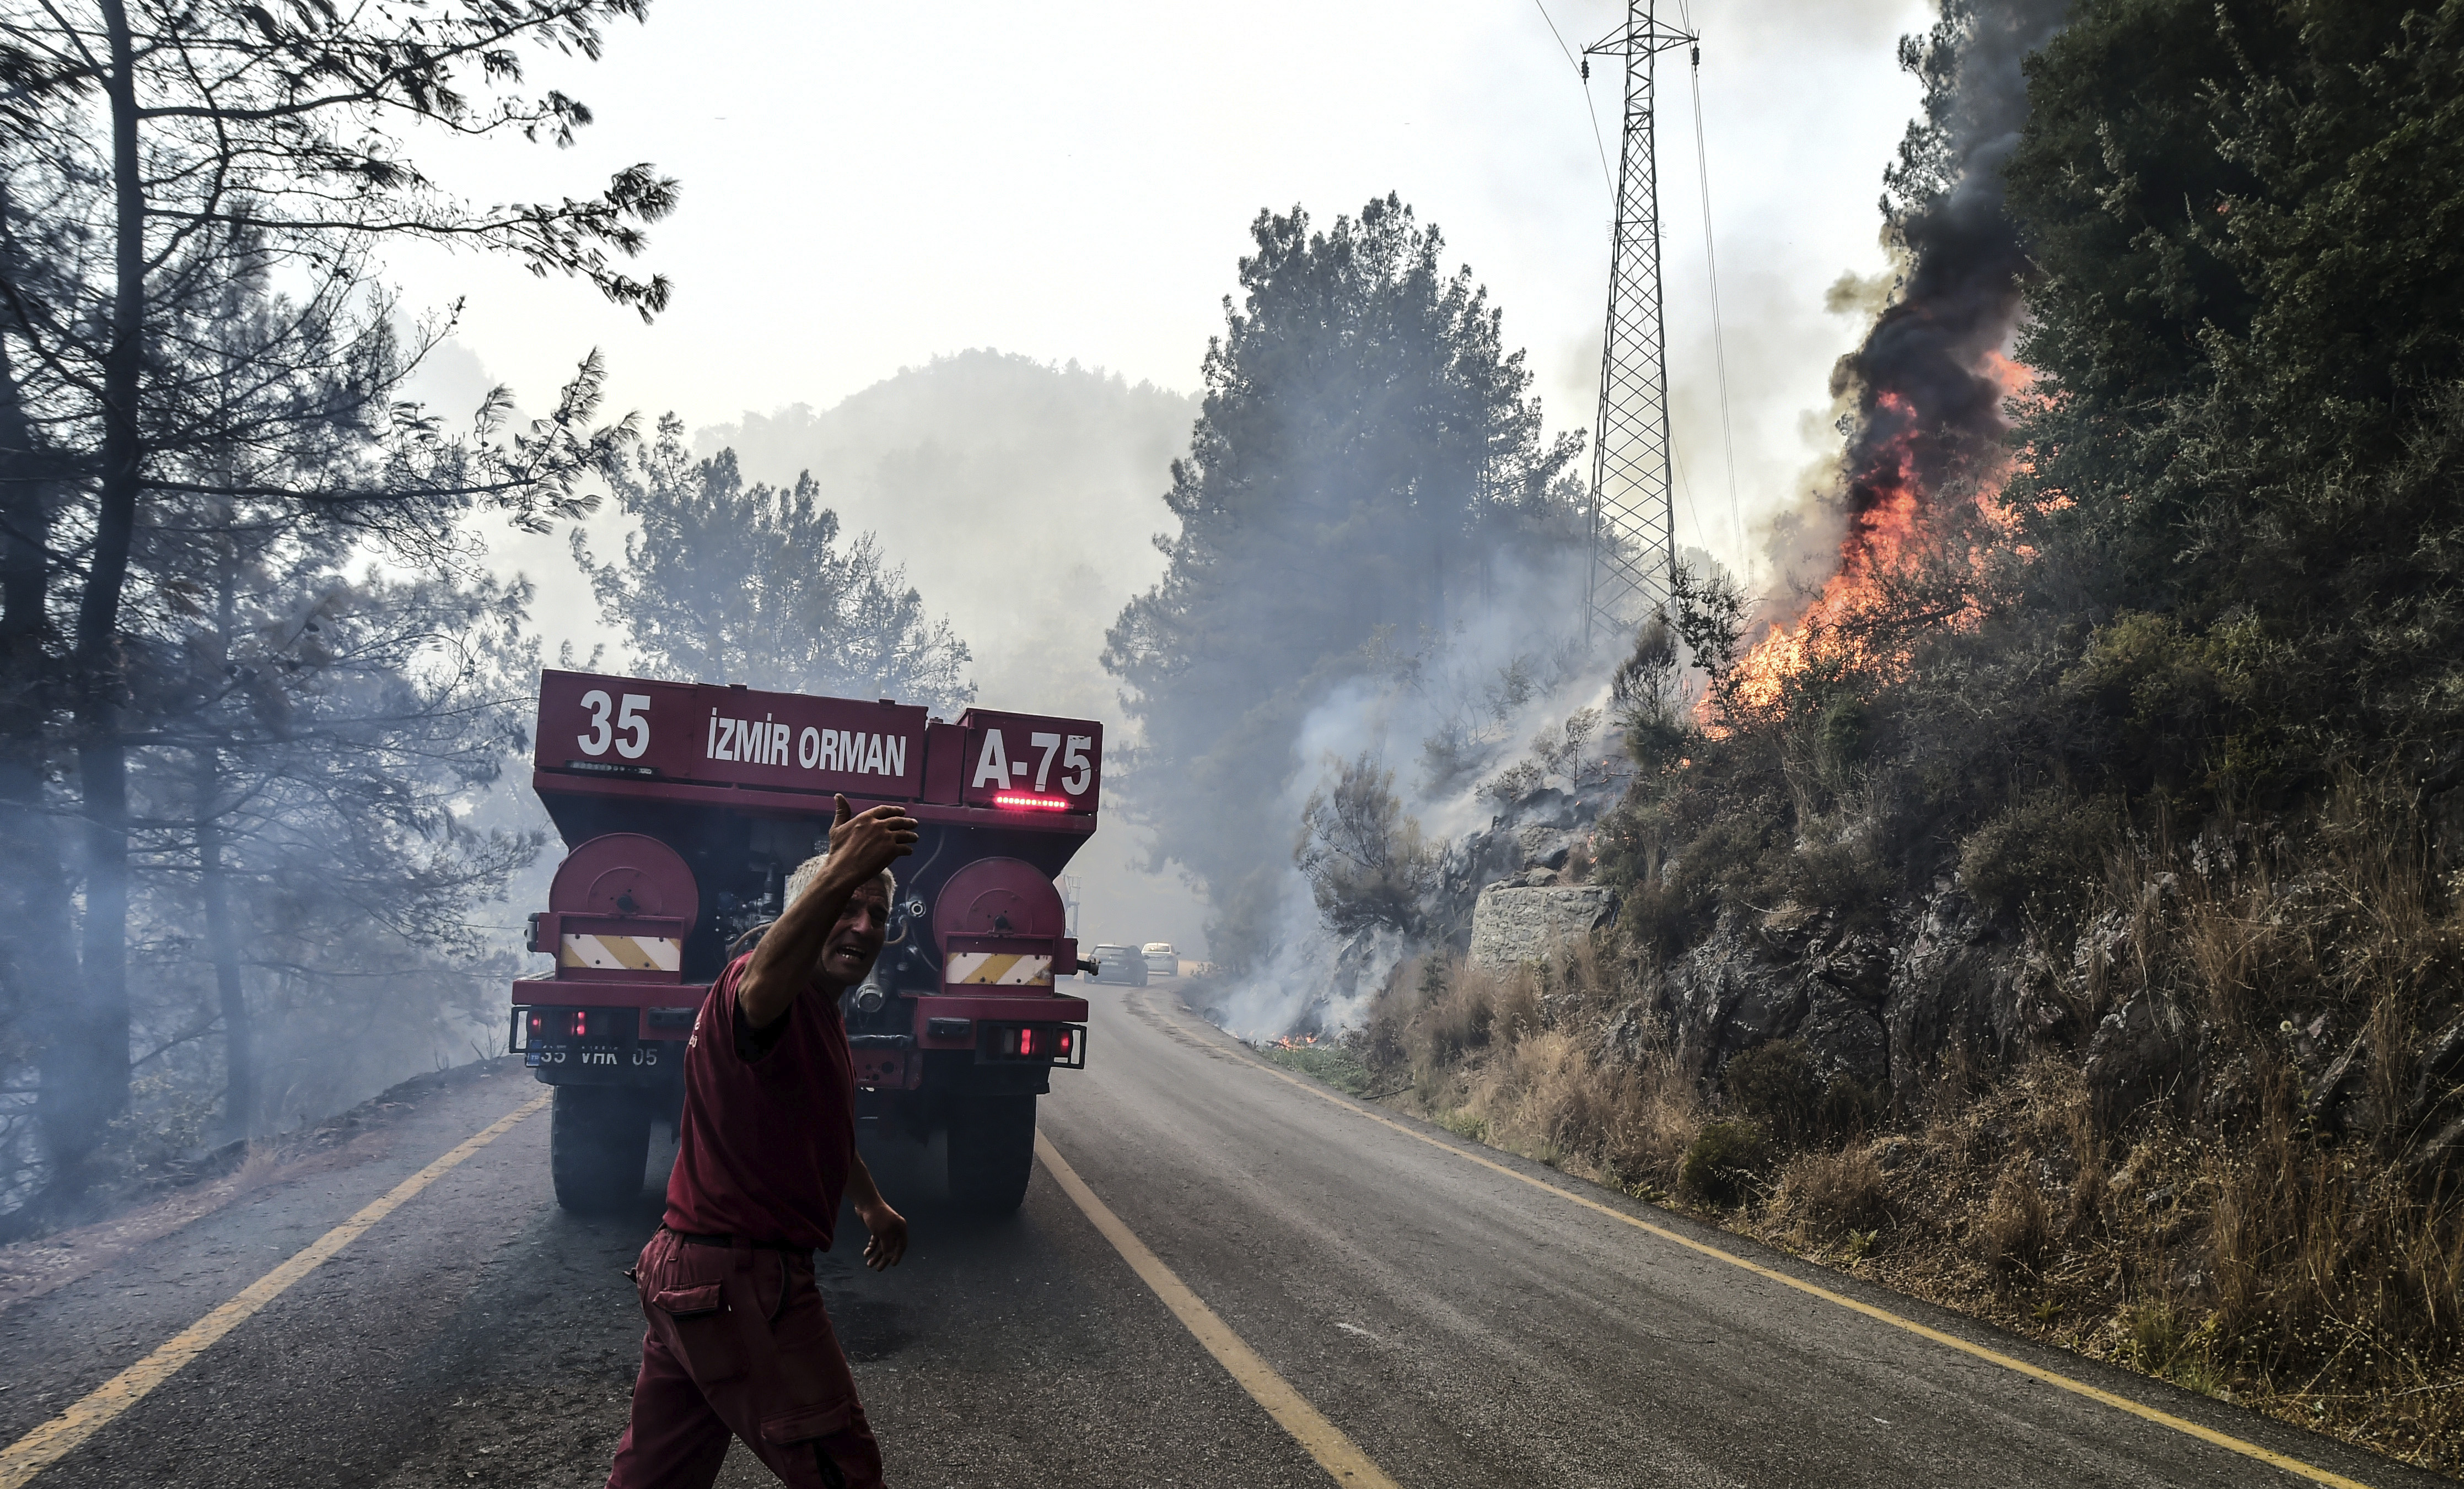 Firefighters work as the wildfires engulf an area near the seashore, forcing people to be evacuated by boats, in Bodrum, Mugla, Turkey, Sunday, Aug. 1, 2021.  (Ismail Coskun/IHA via AP)